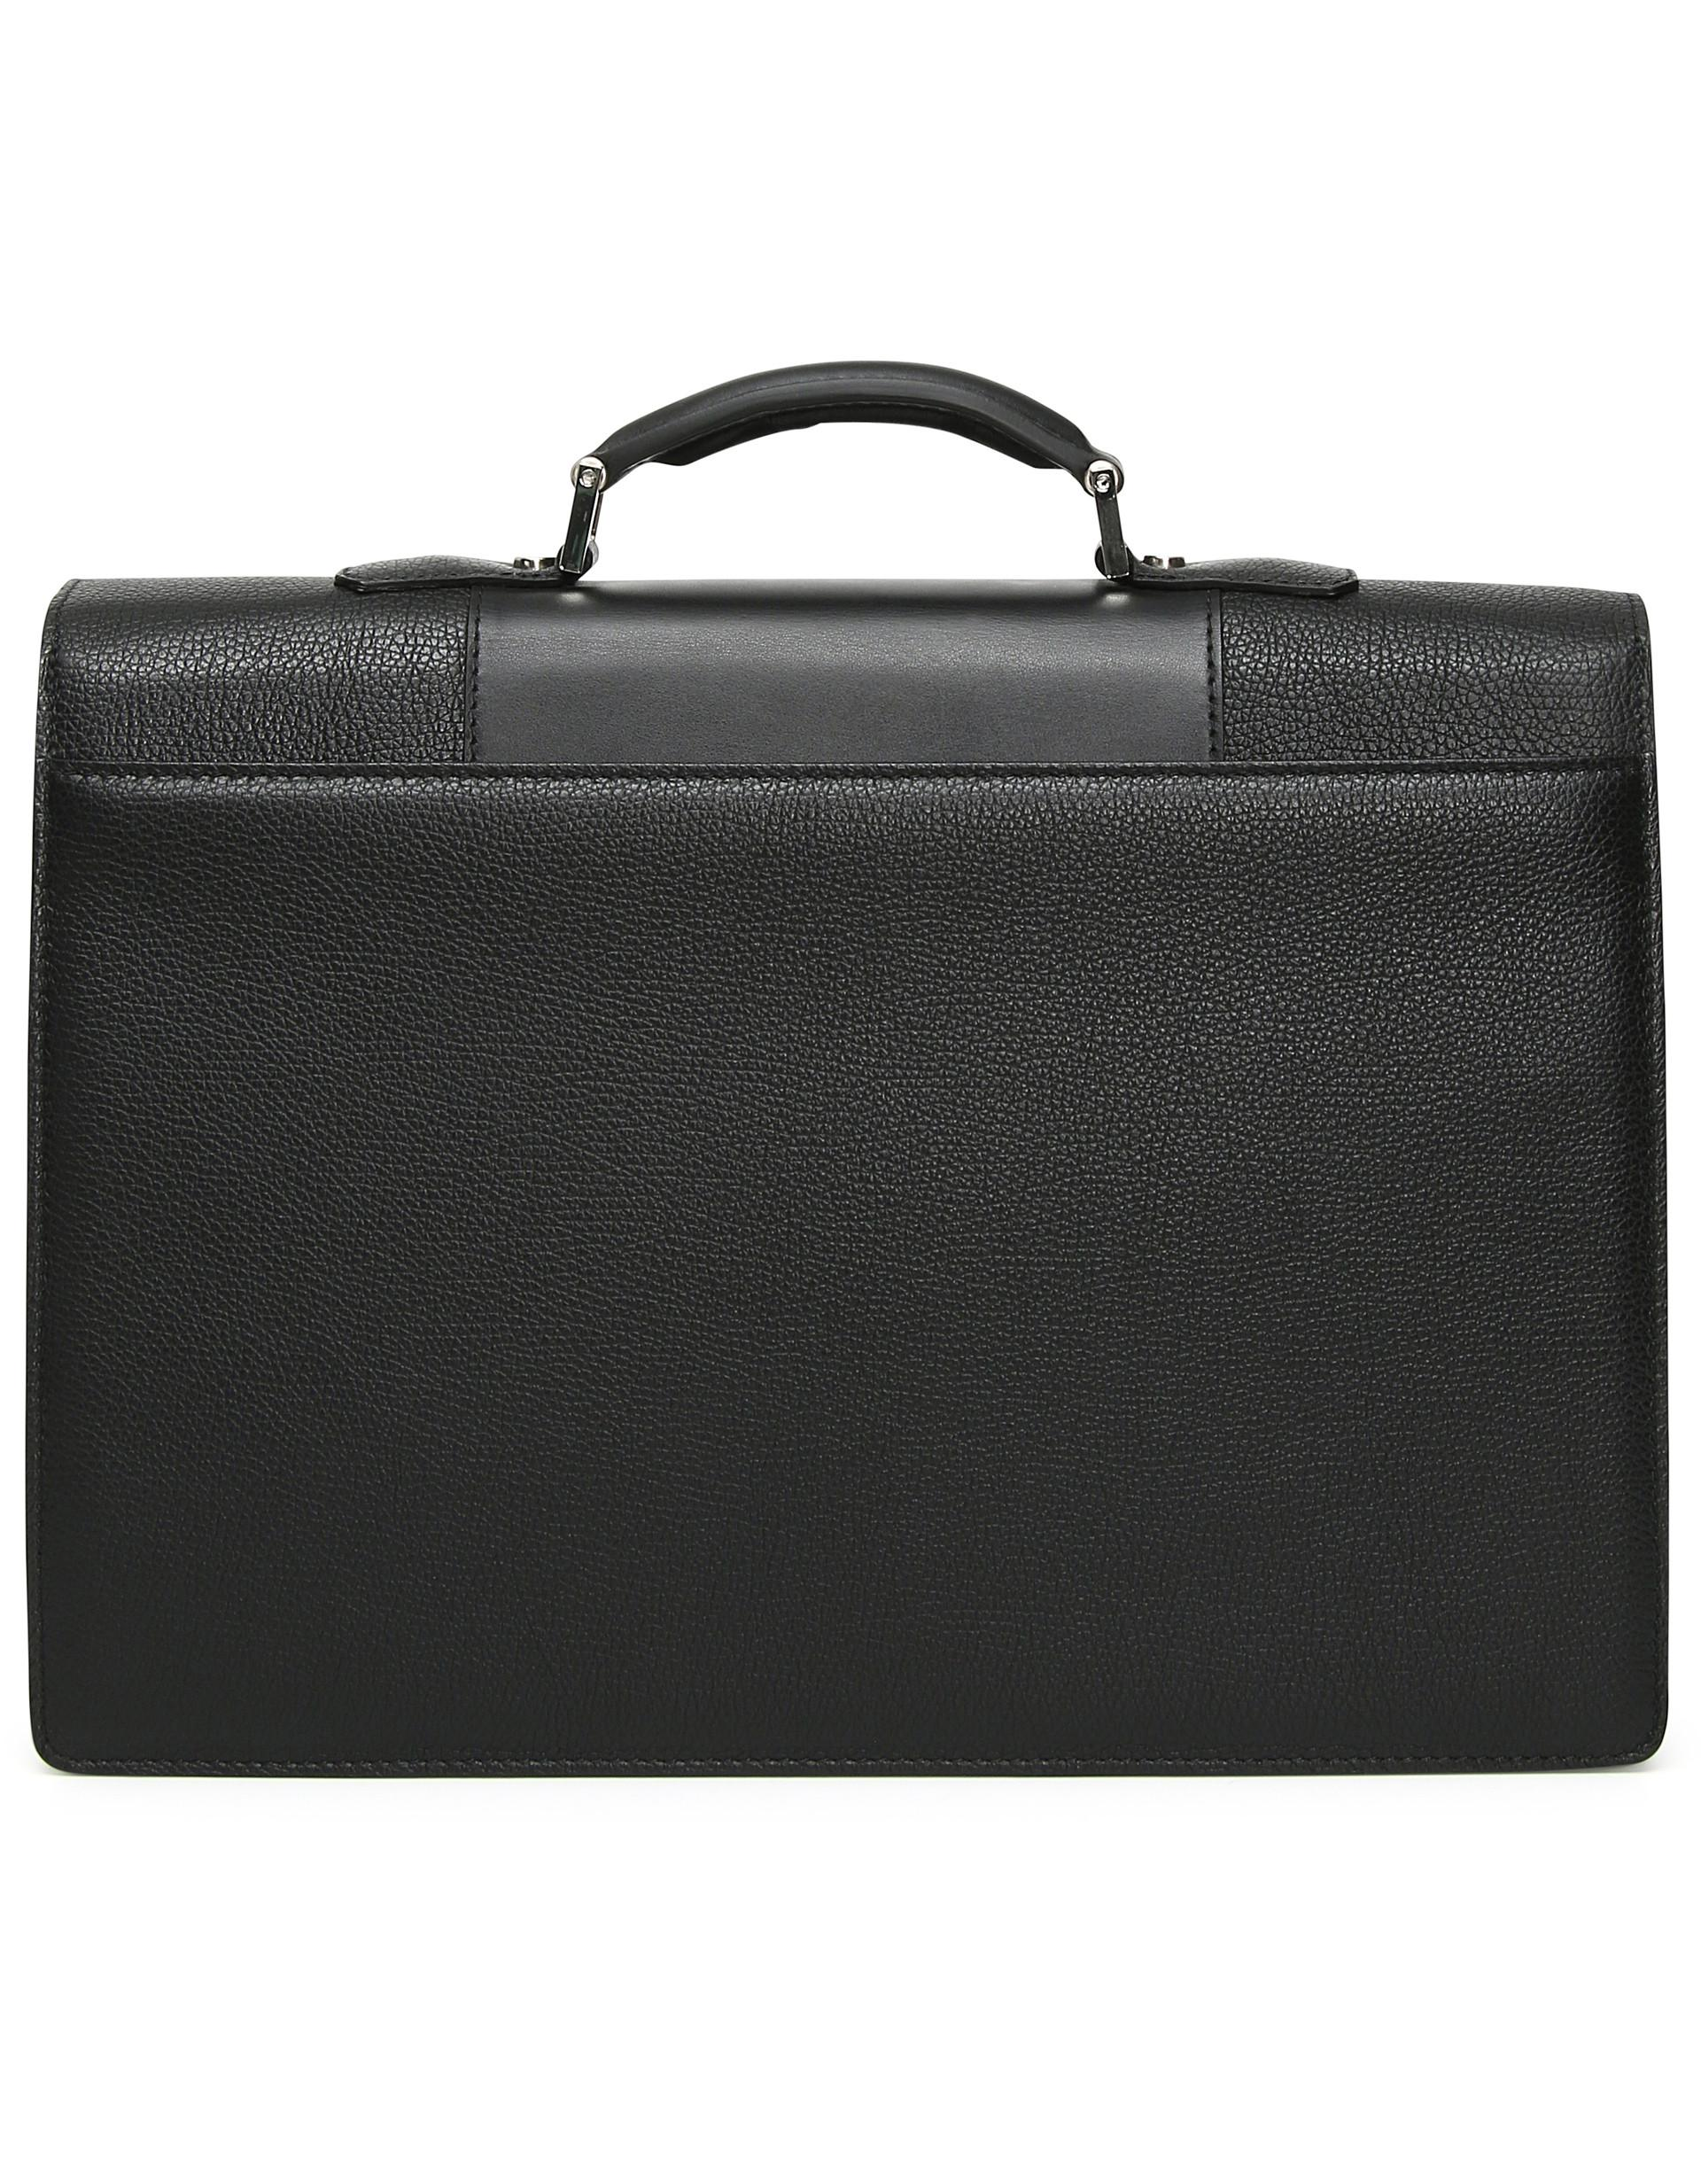 Lyst - Canali Black Tumbled Calfskin Leather Briefcase in Black for Men 6f4bd9f81e8c9